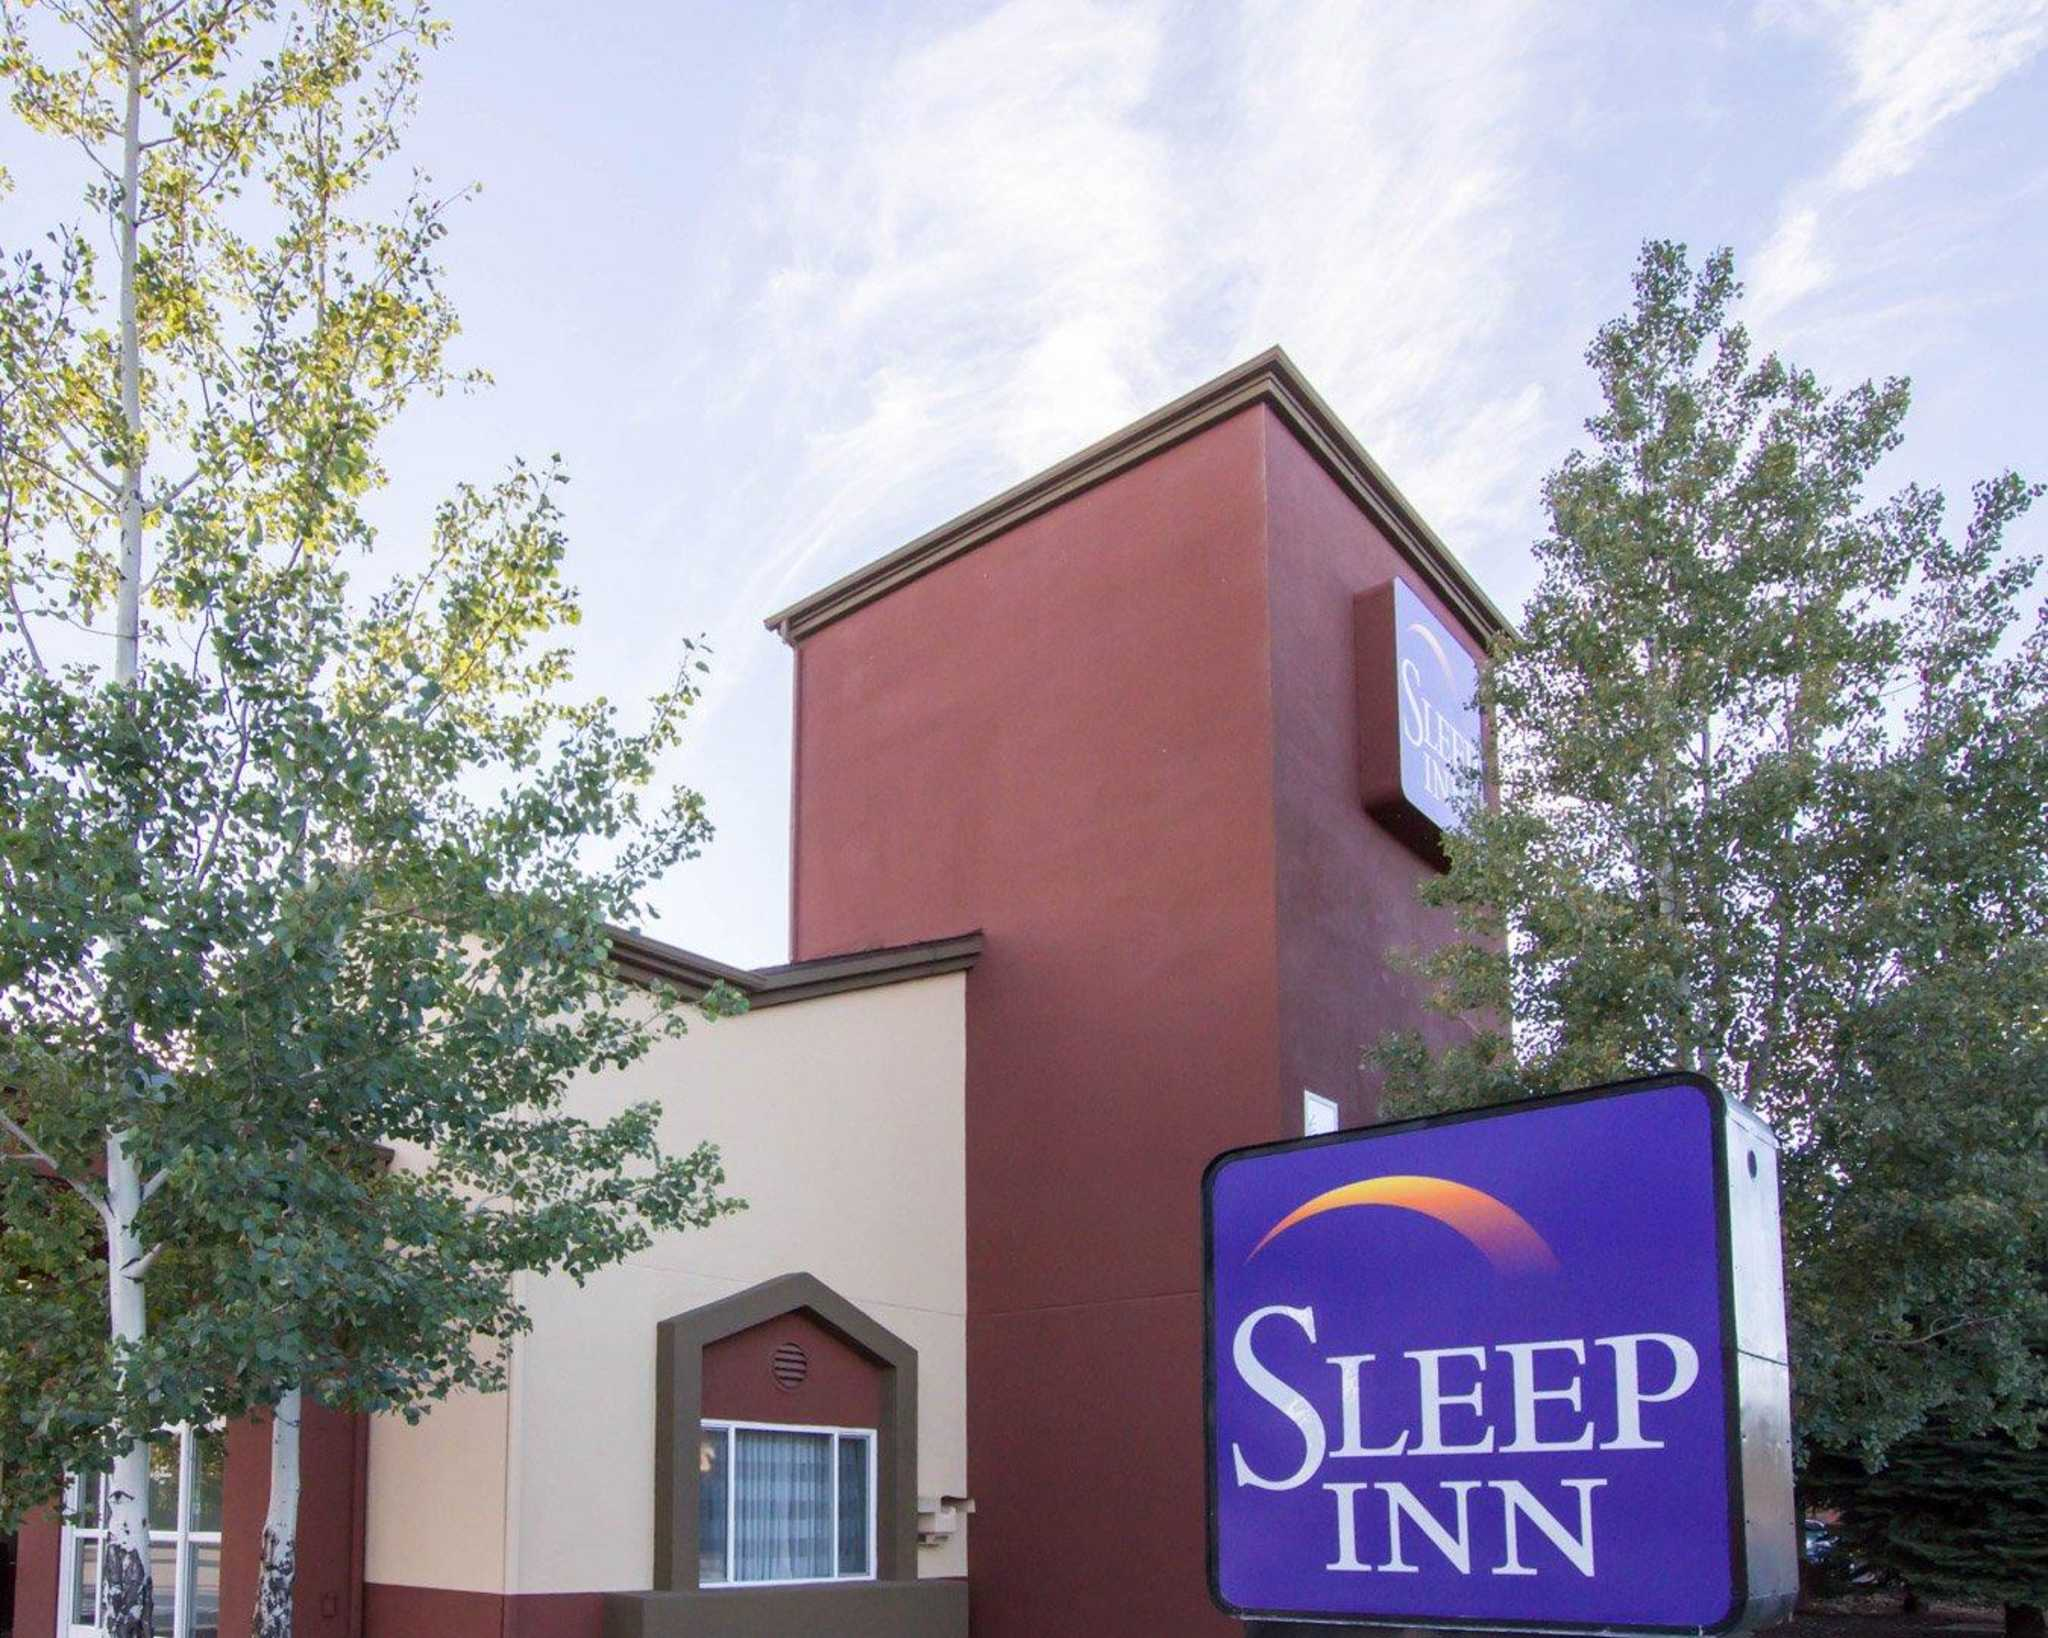 Sleep Inn image 1